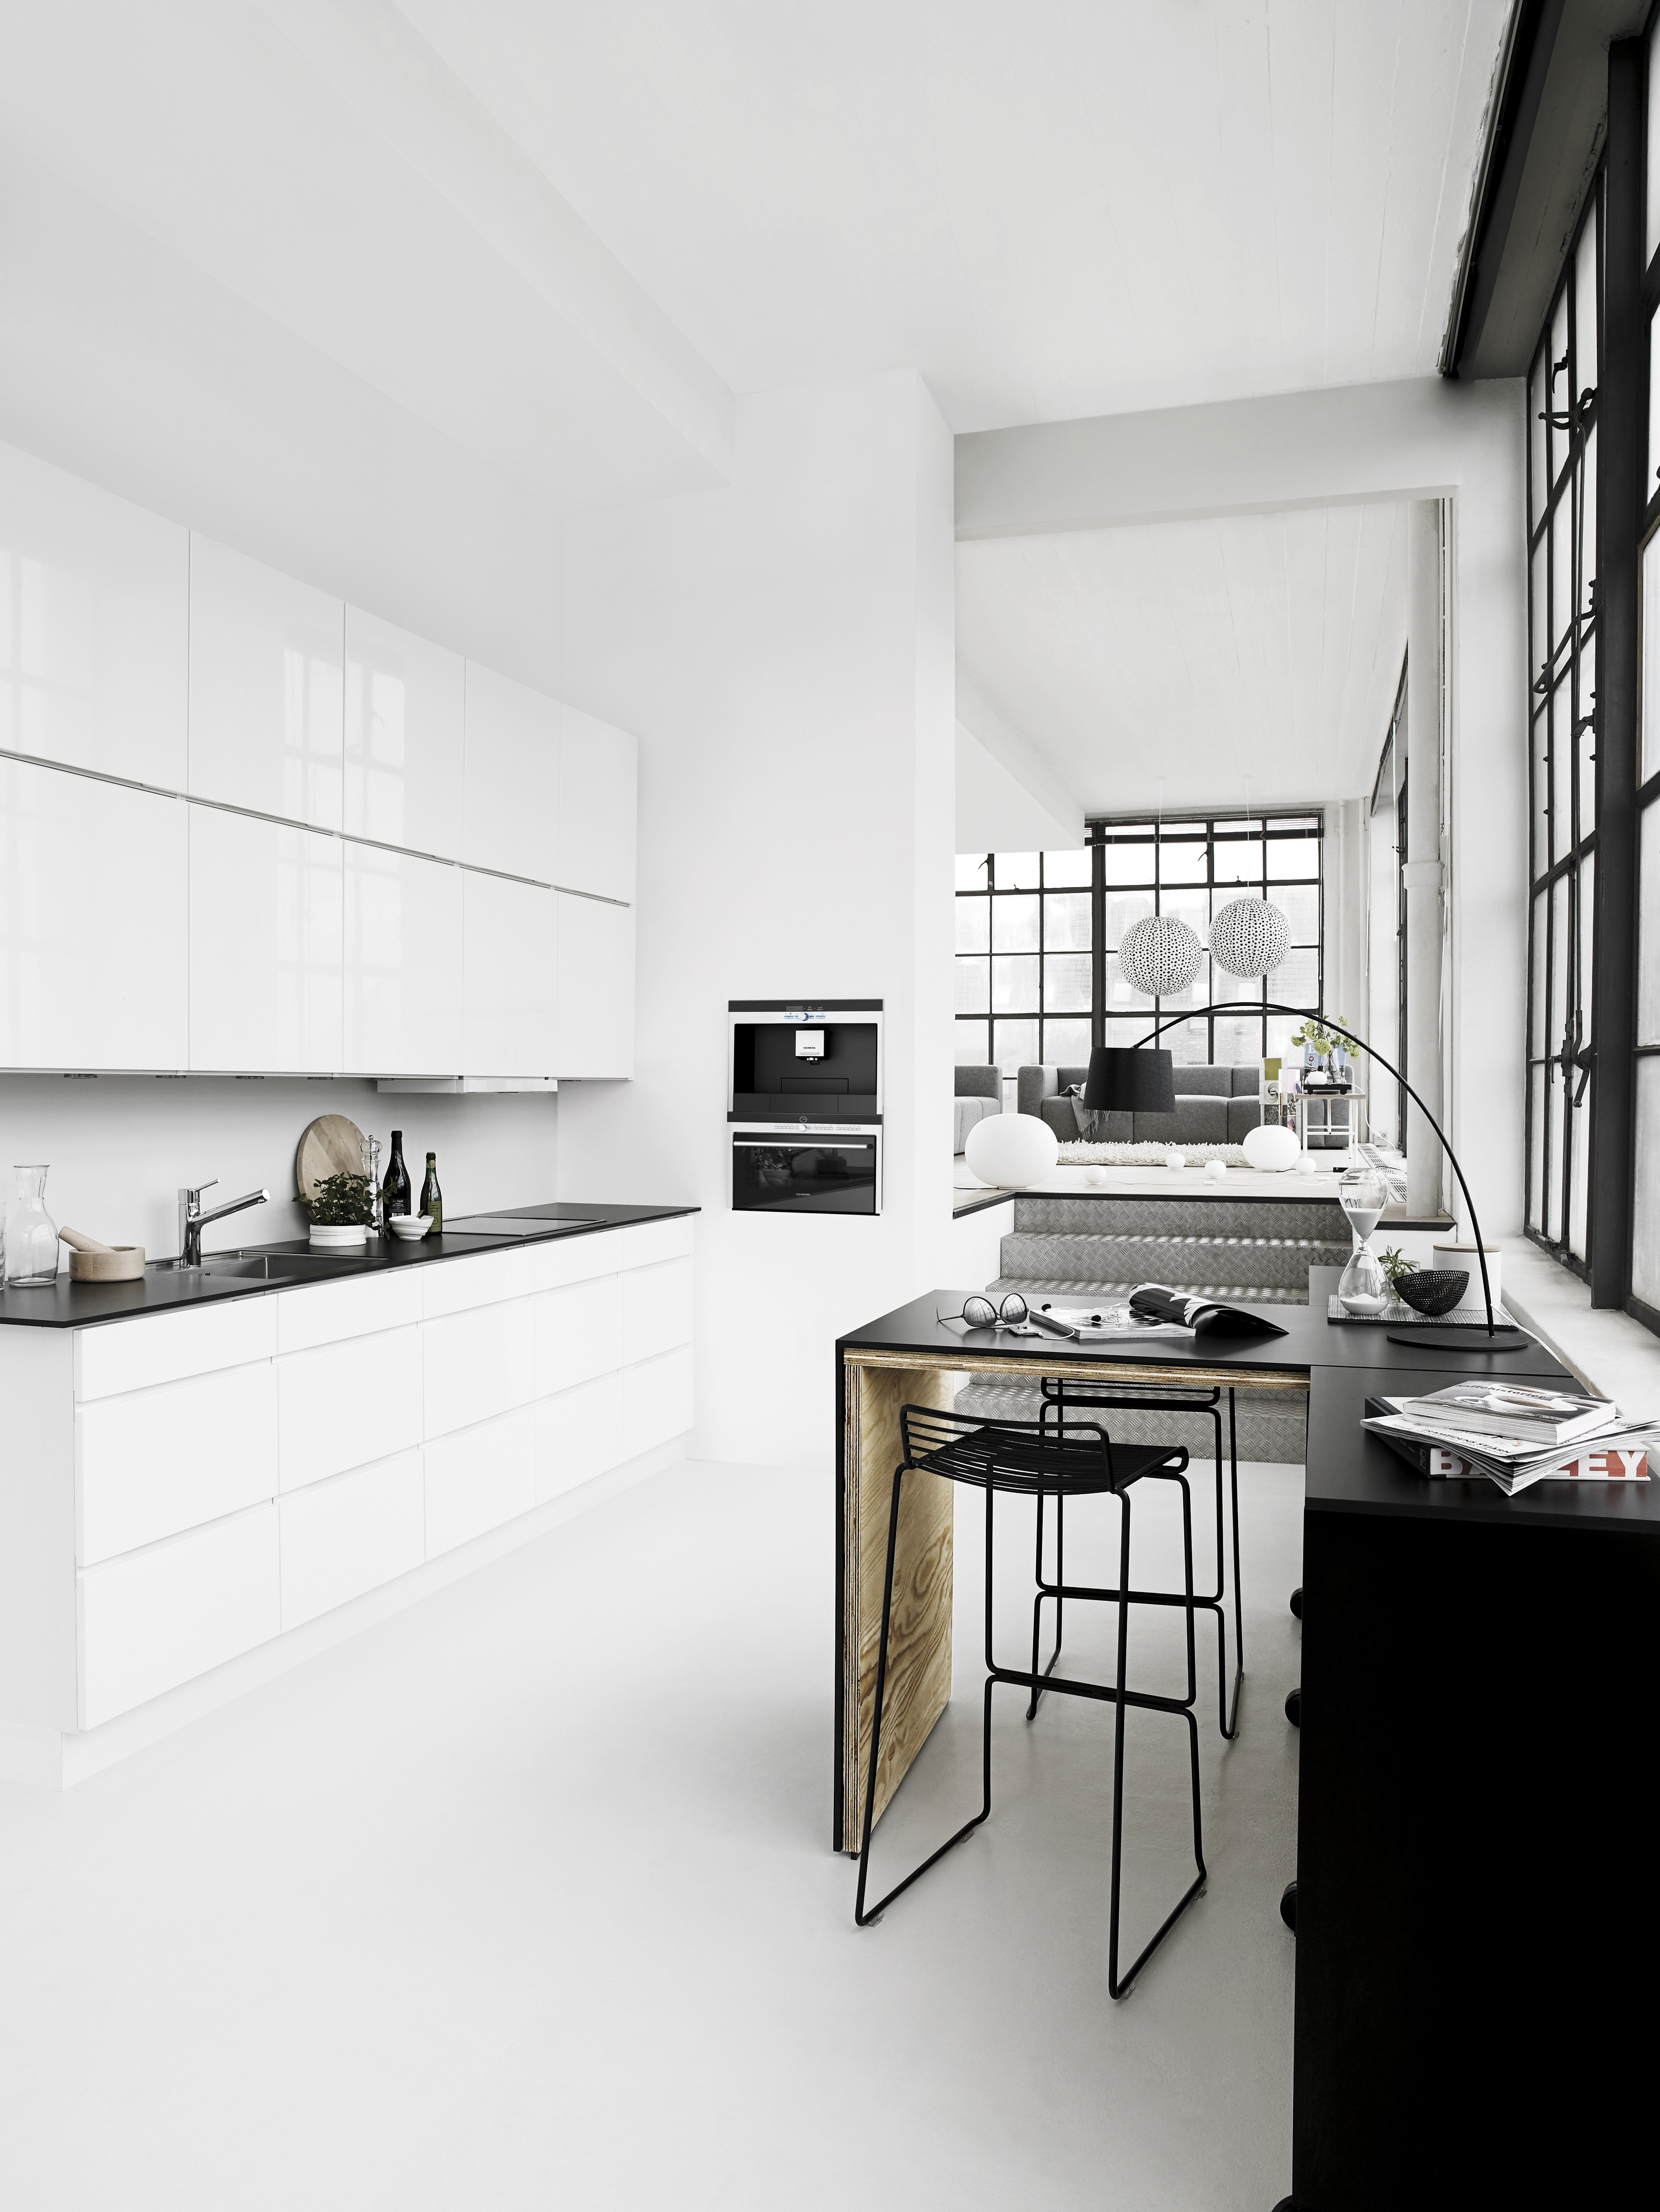 77 Beautiful Kitchen Design Ideas For The Heart Your Home